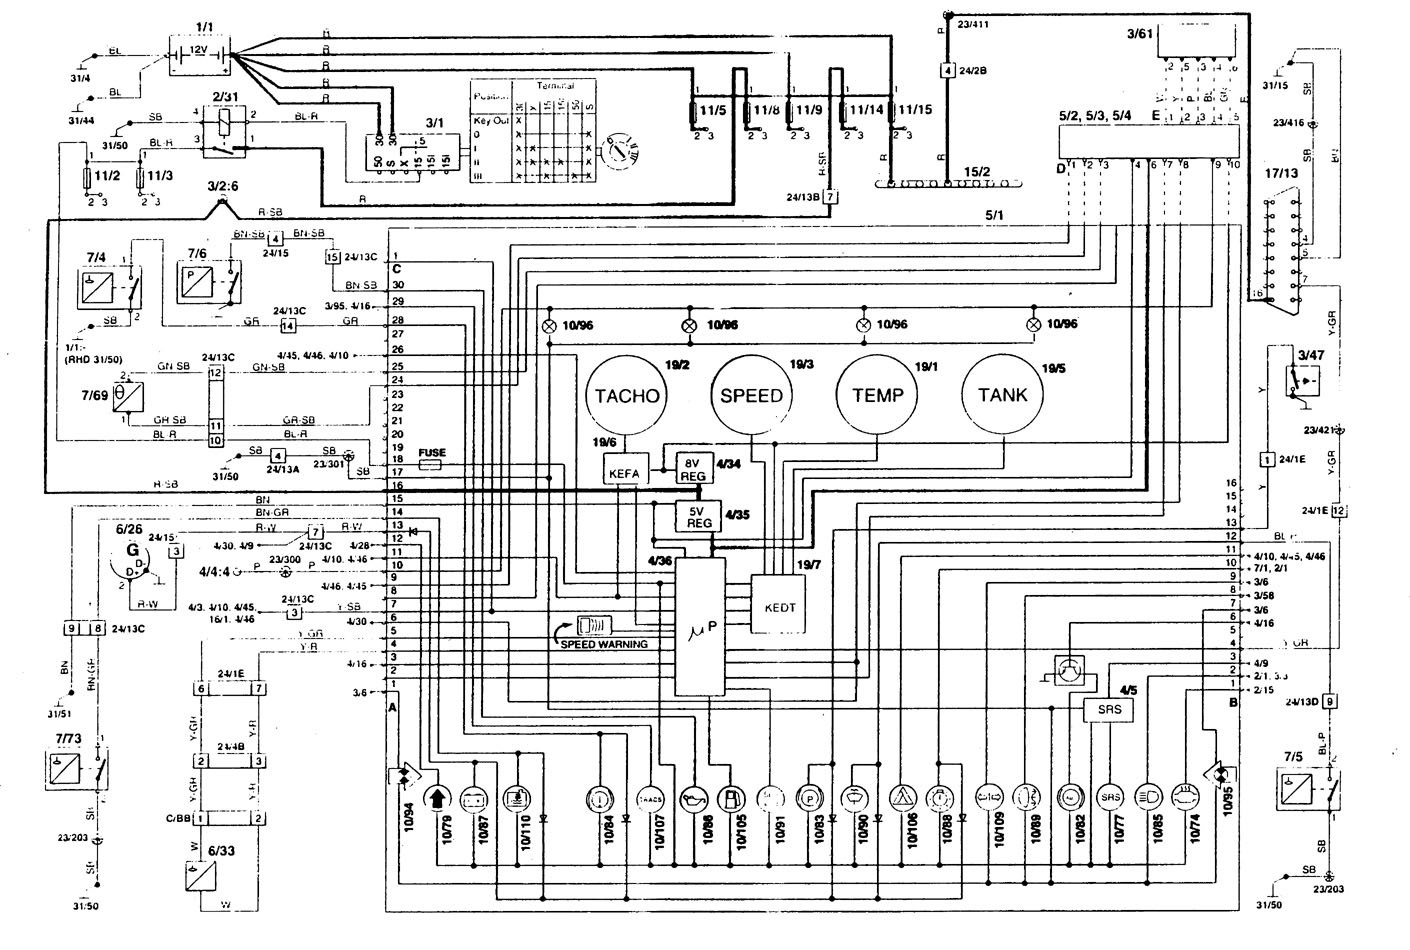 volvo 850 wiring diagram instrumentation 1 1996 volvo 850 (1996) wiring diagrams instrumentation carknowledge